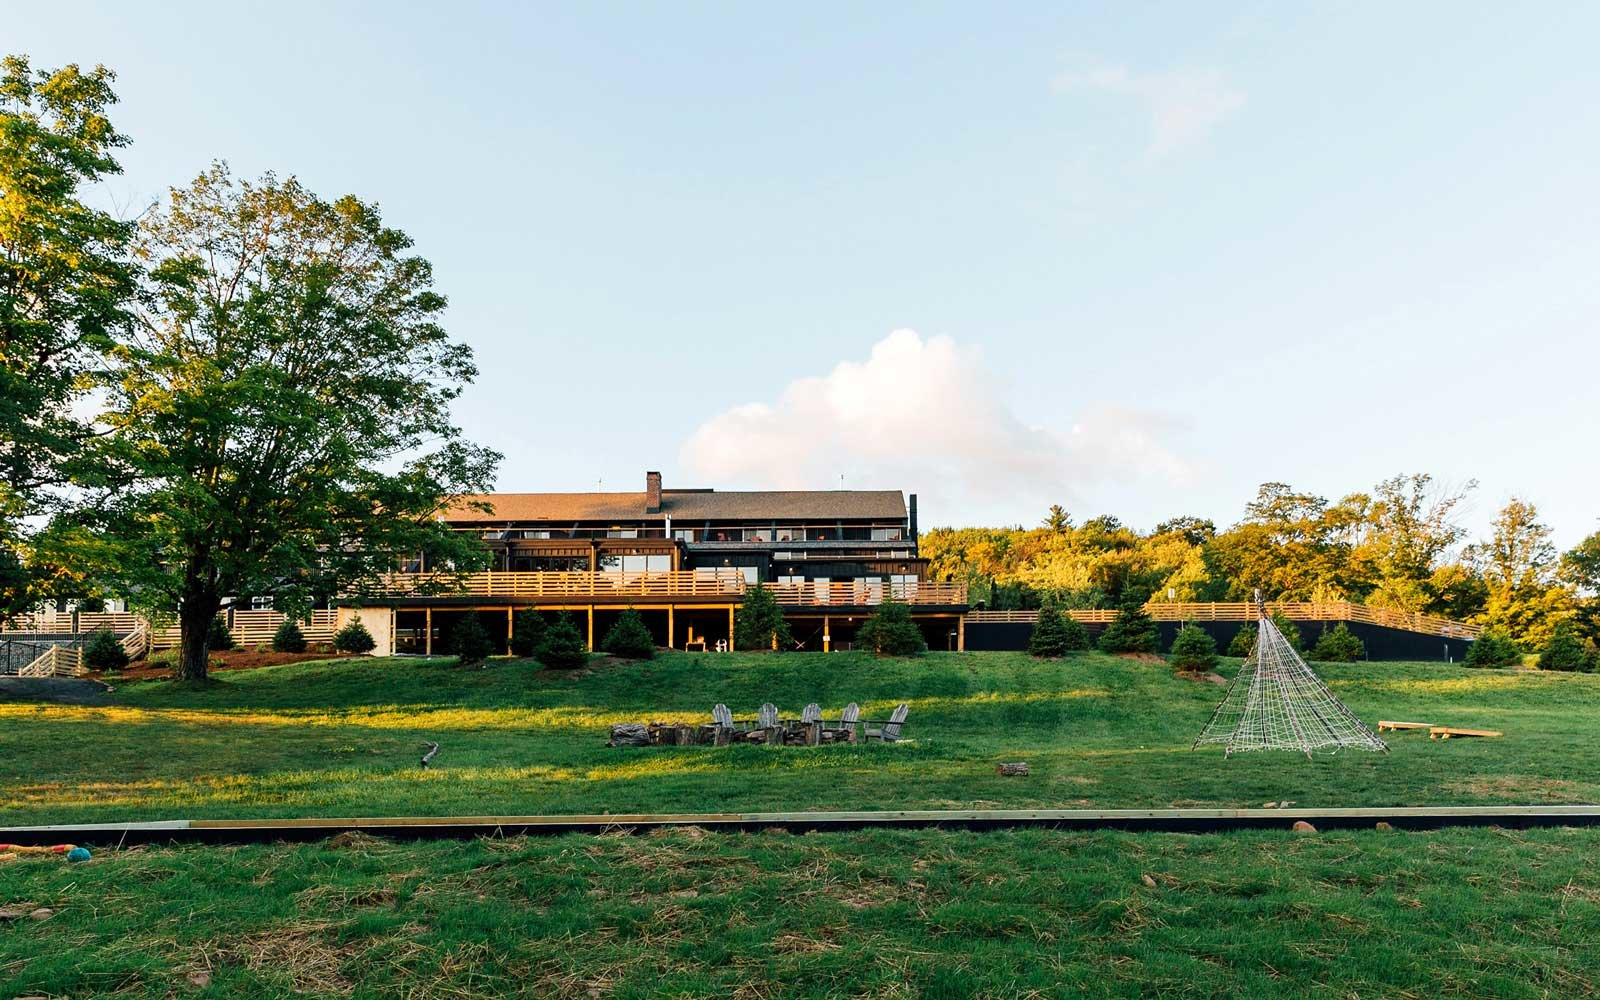 Scribner's Catskills Lodge, in New York